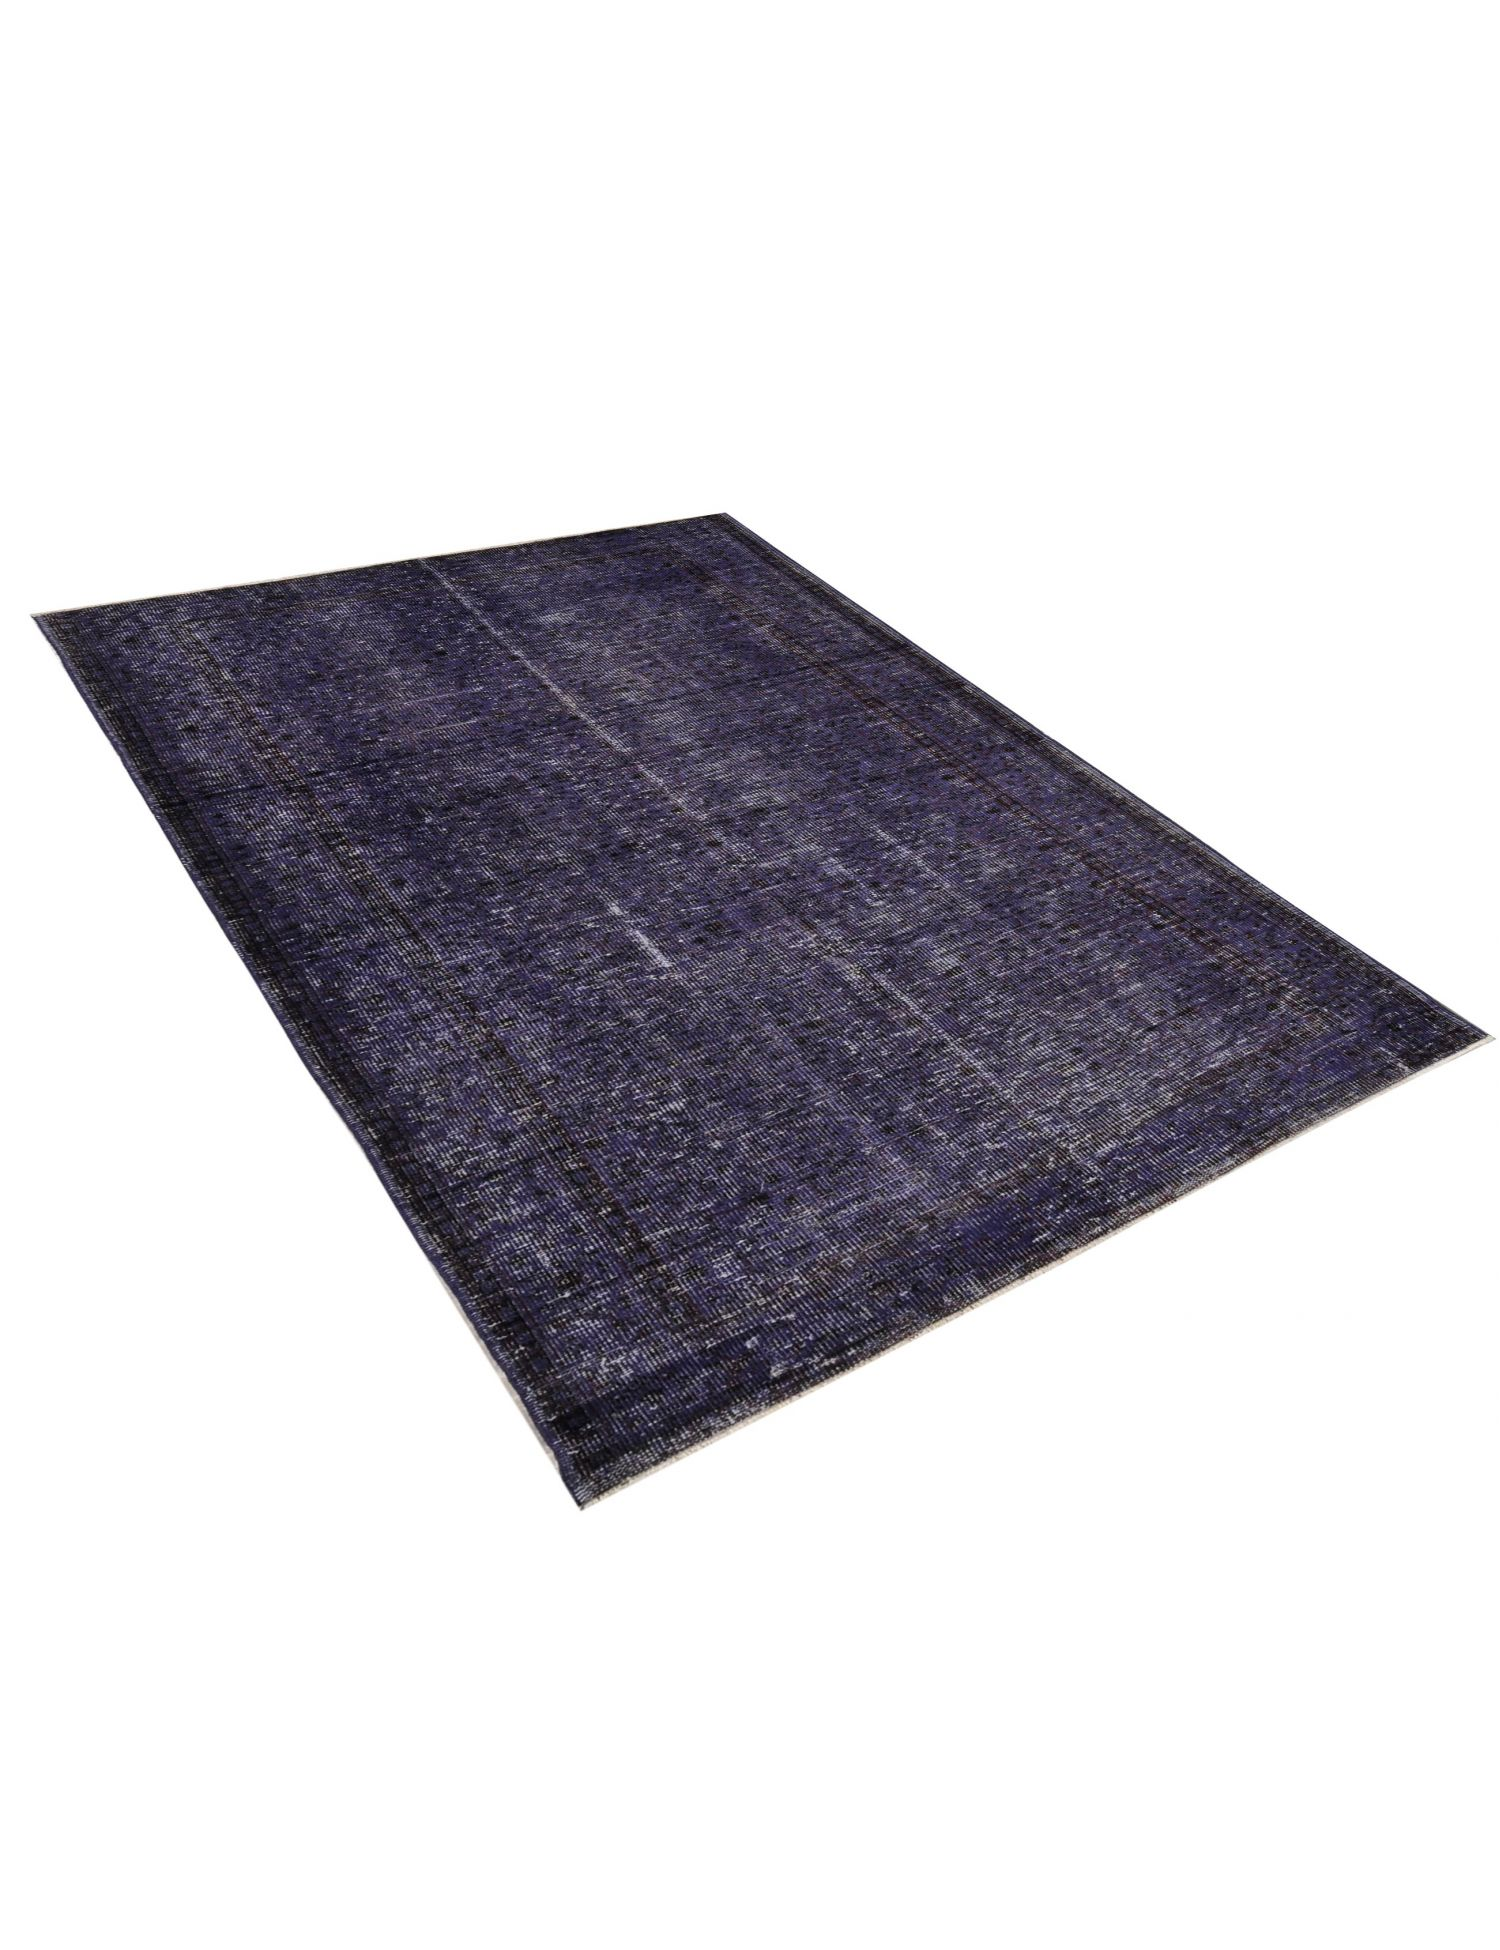 Vintage Carpet  purple <br/>283 x 168 cm